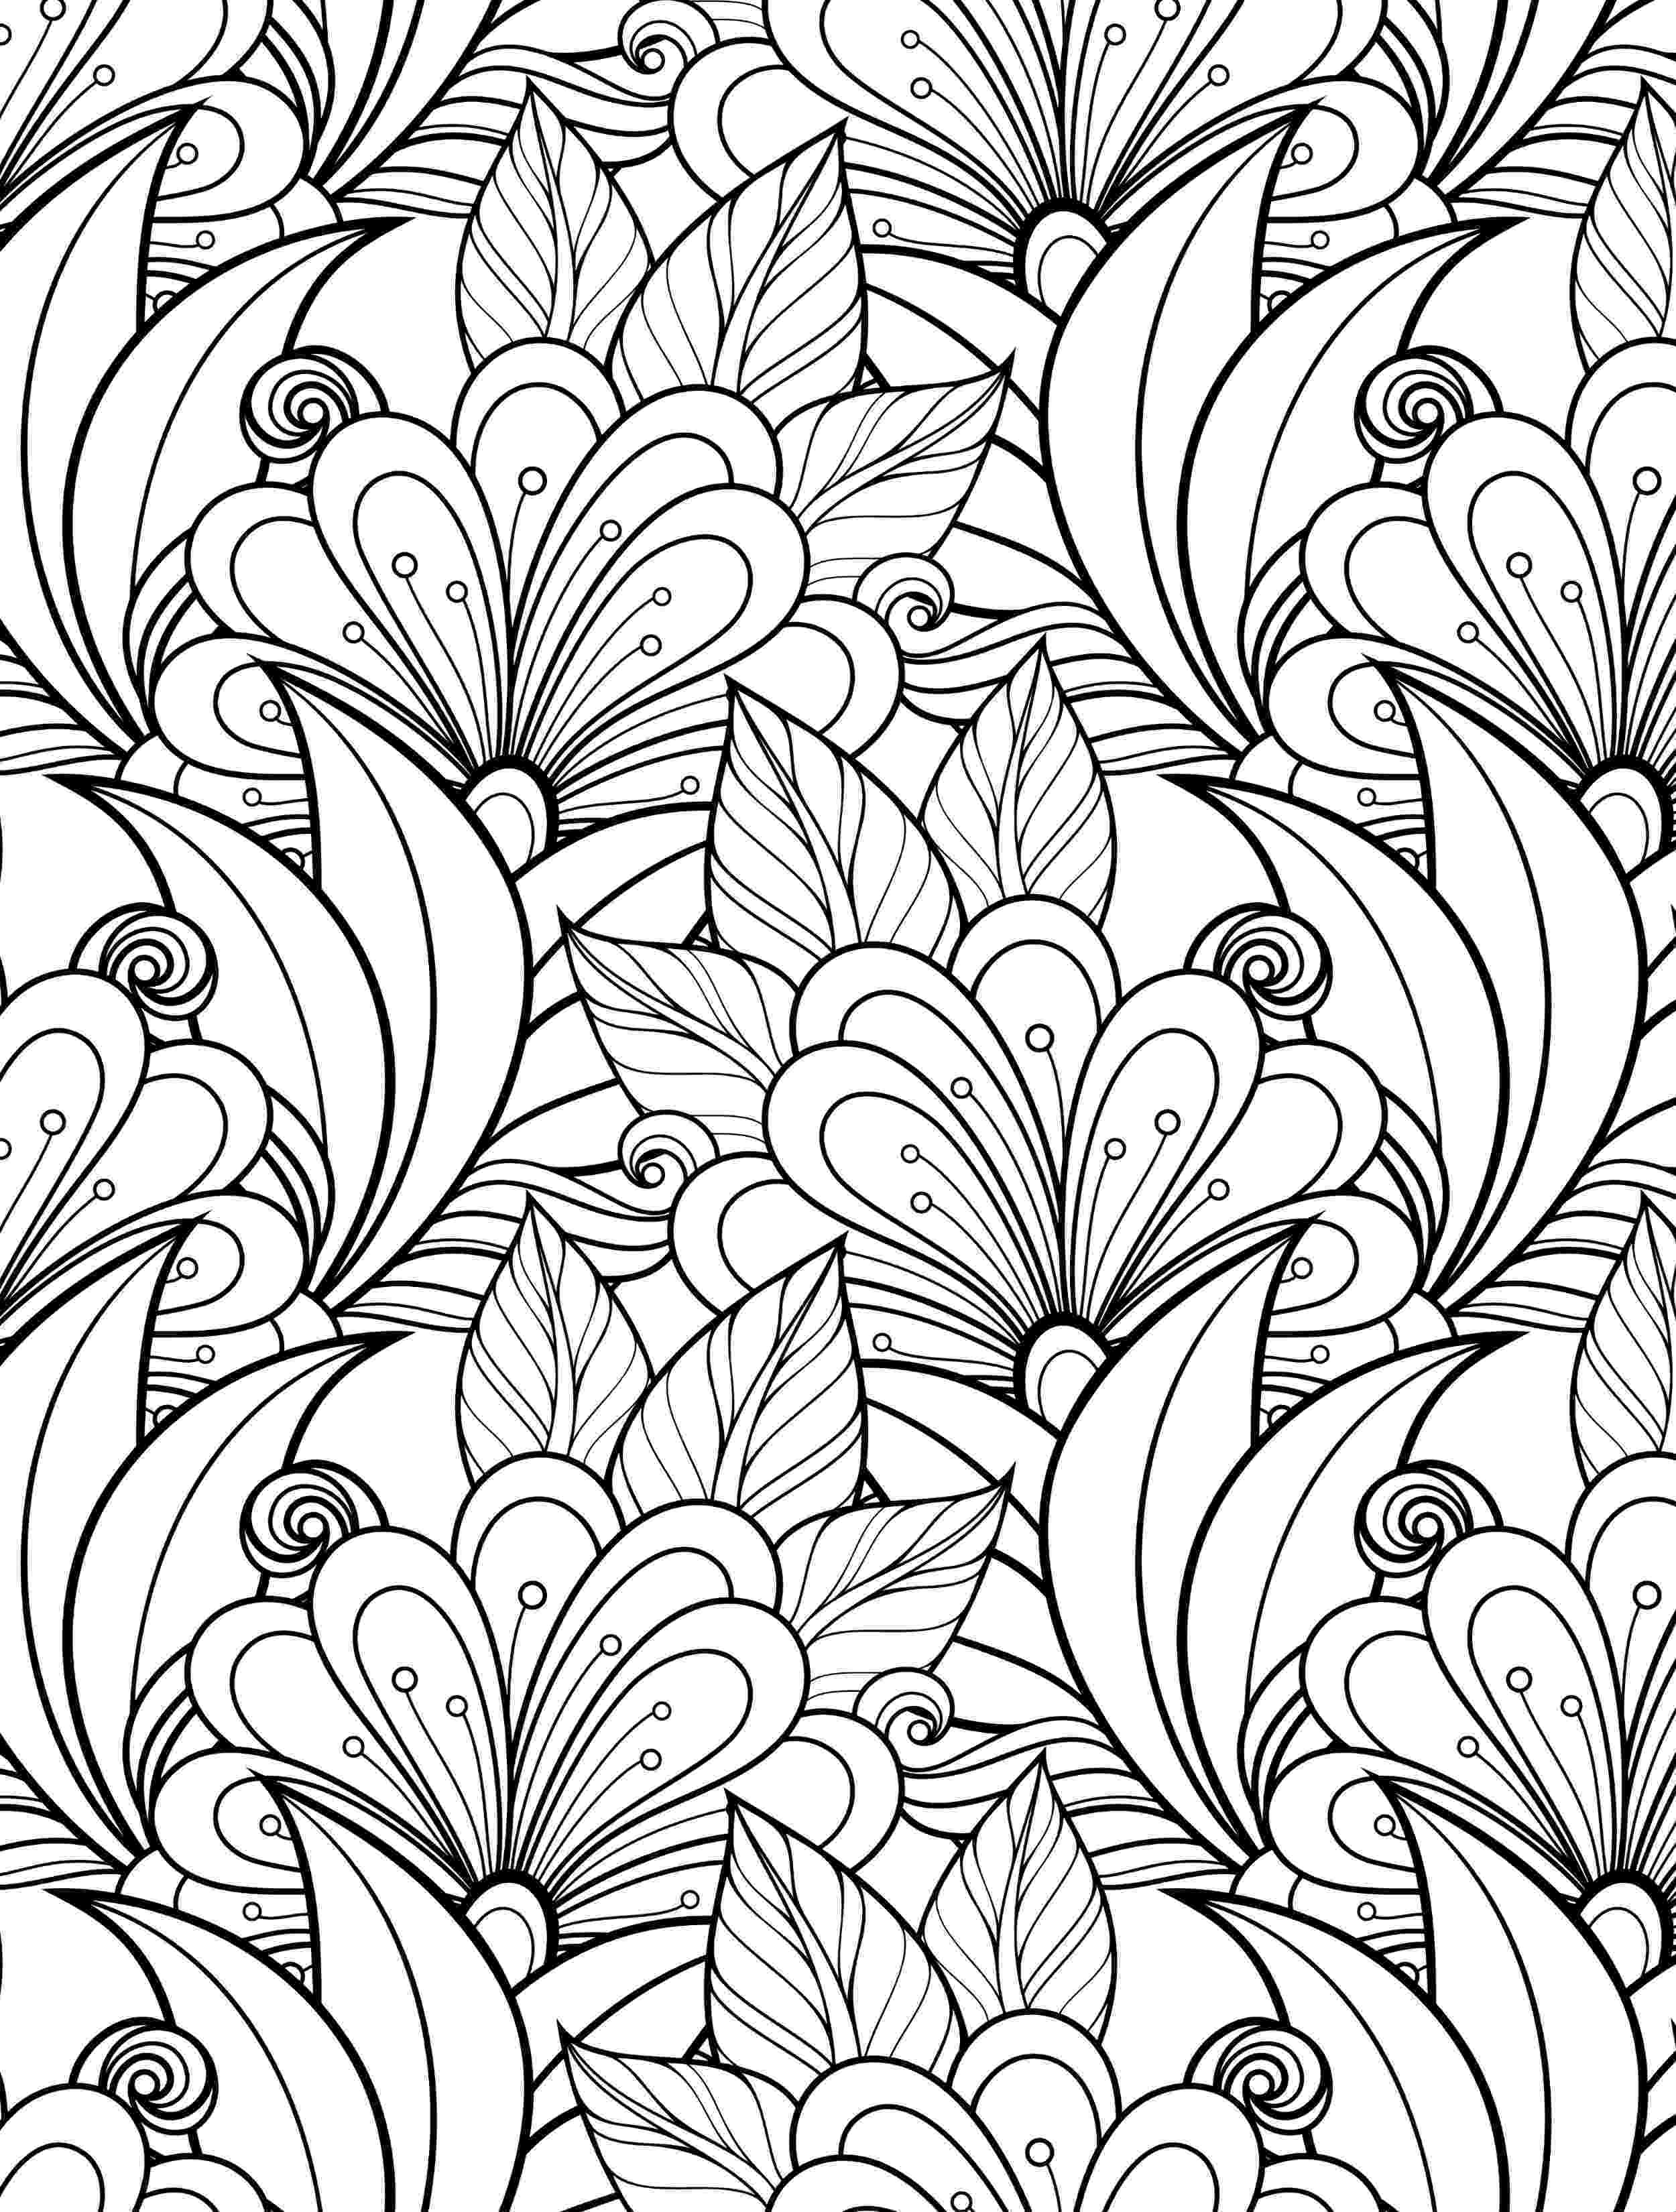 coloring pages online for adults spring flowers adult coloring page favecraftscom adults for pages coloring online